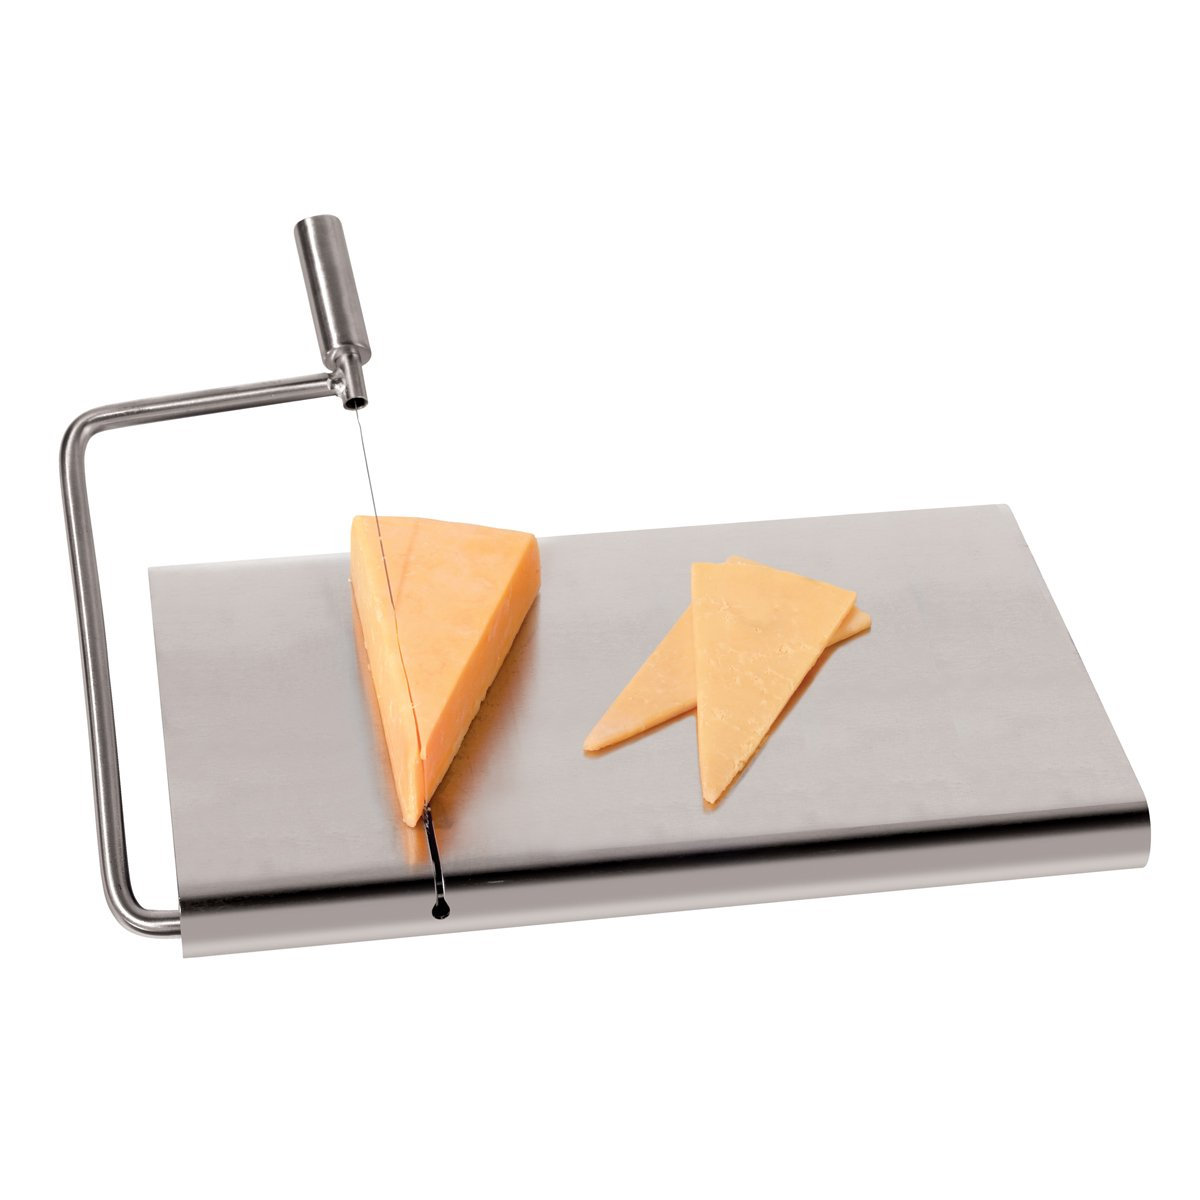 Amazon.com: Oggi 7540 Stainless Steel Cheese Cutting Board with Wire ...